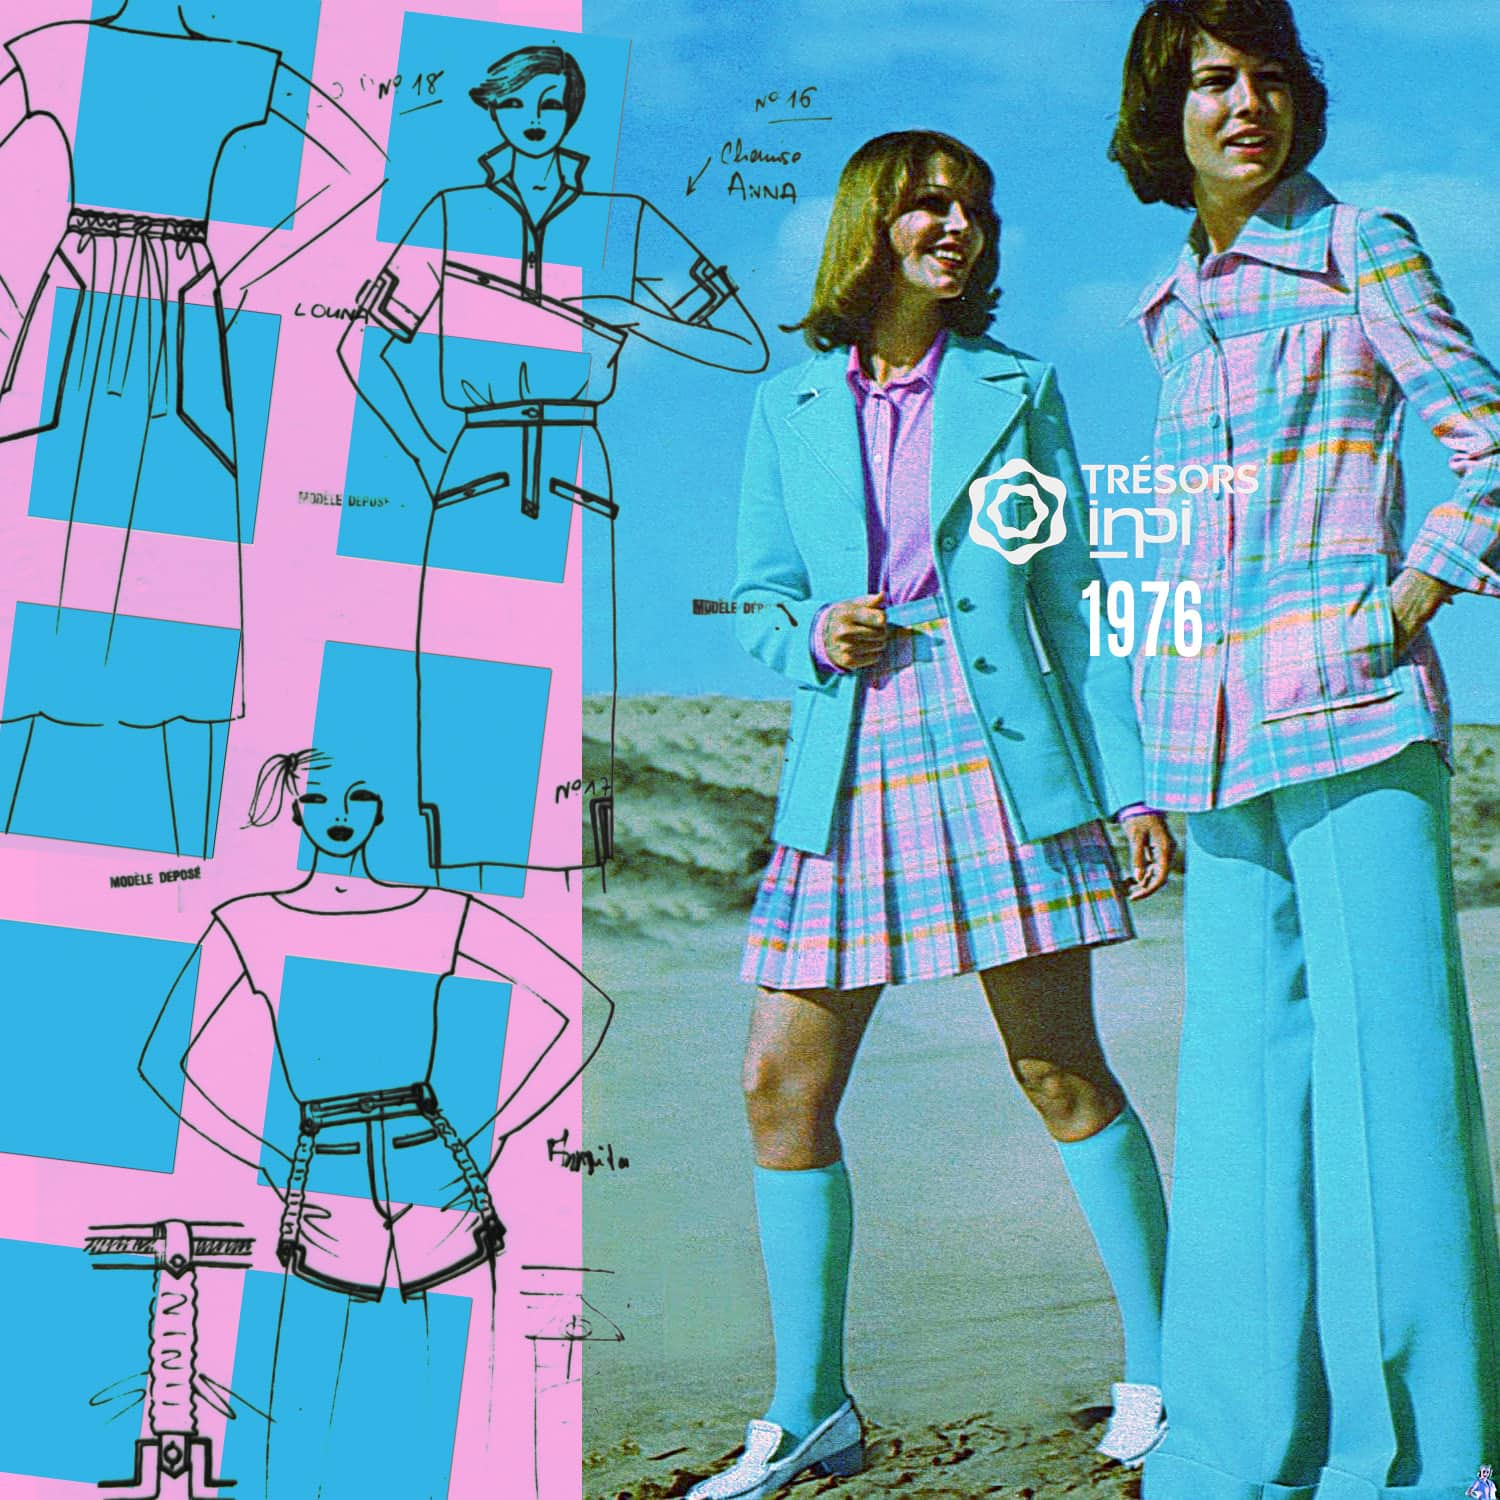 Styliste SARL 1976 tennis mini-skirts, shorts inventions - INPI archives